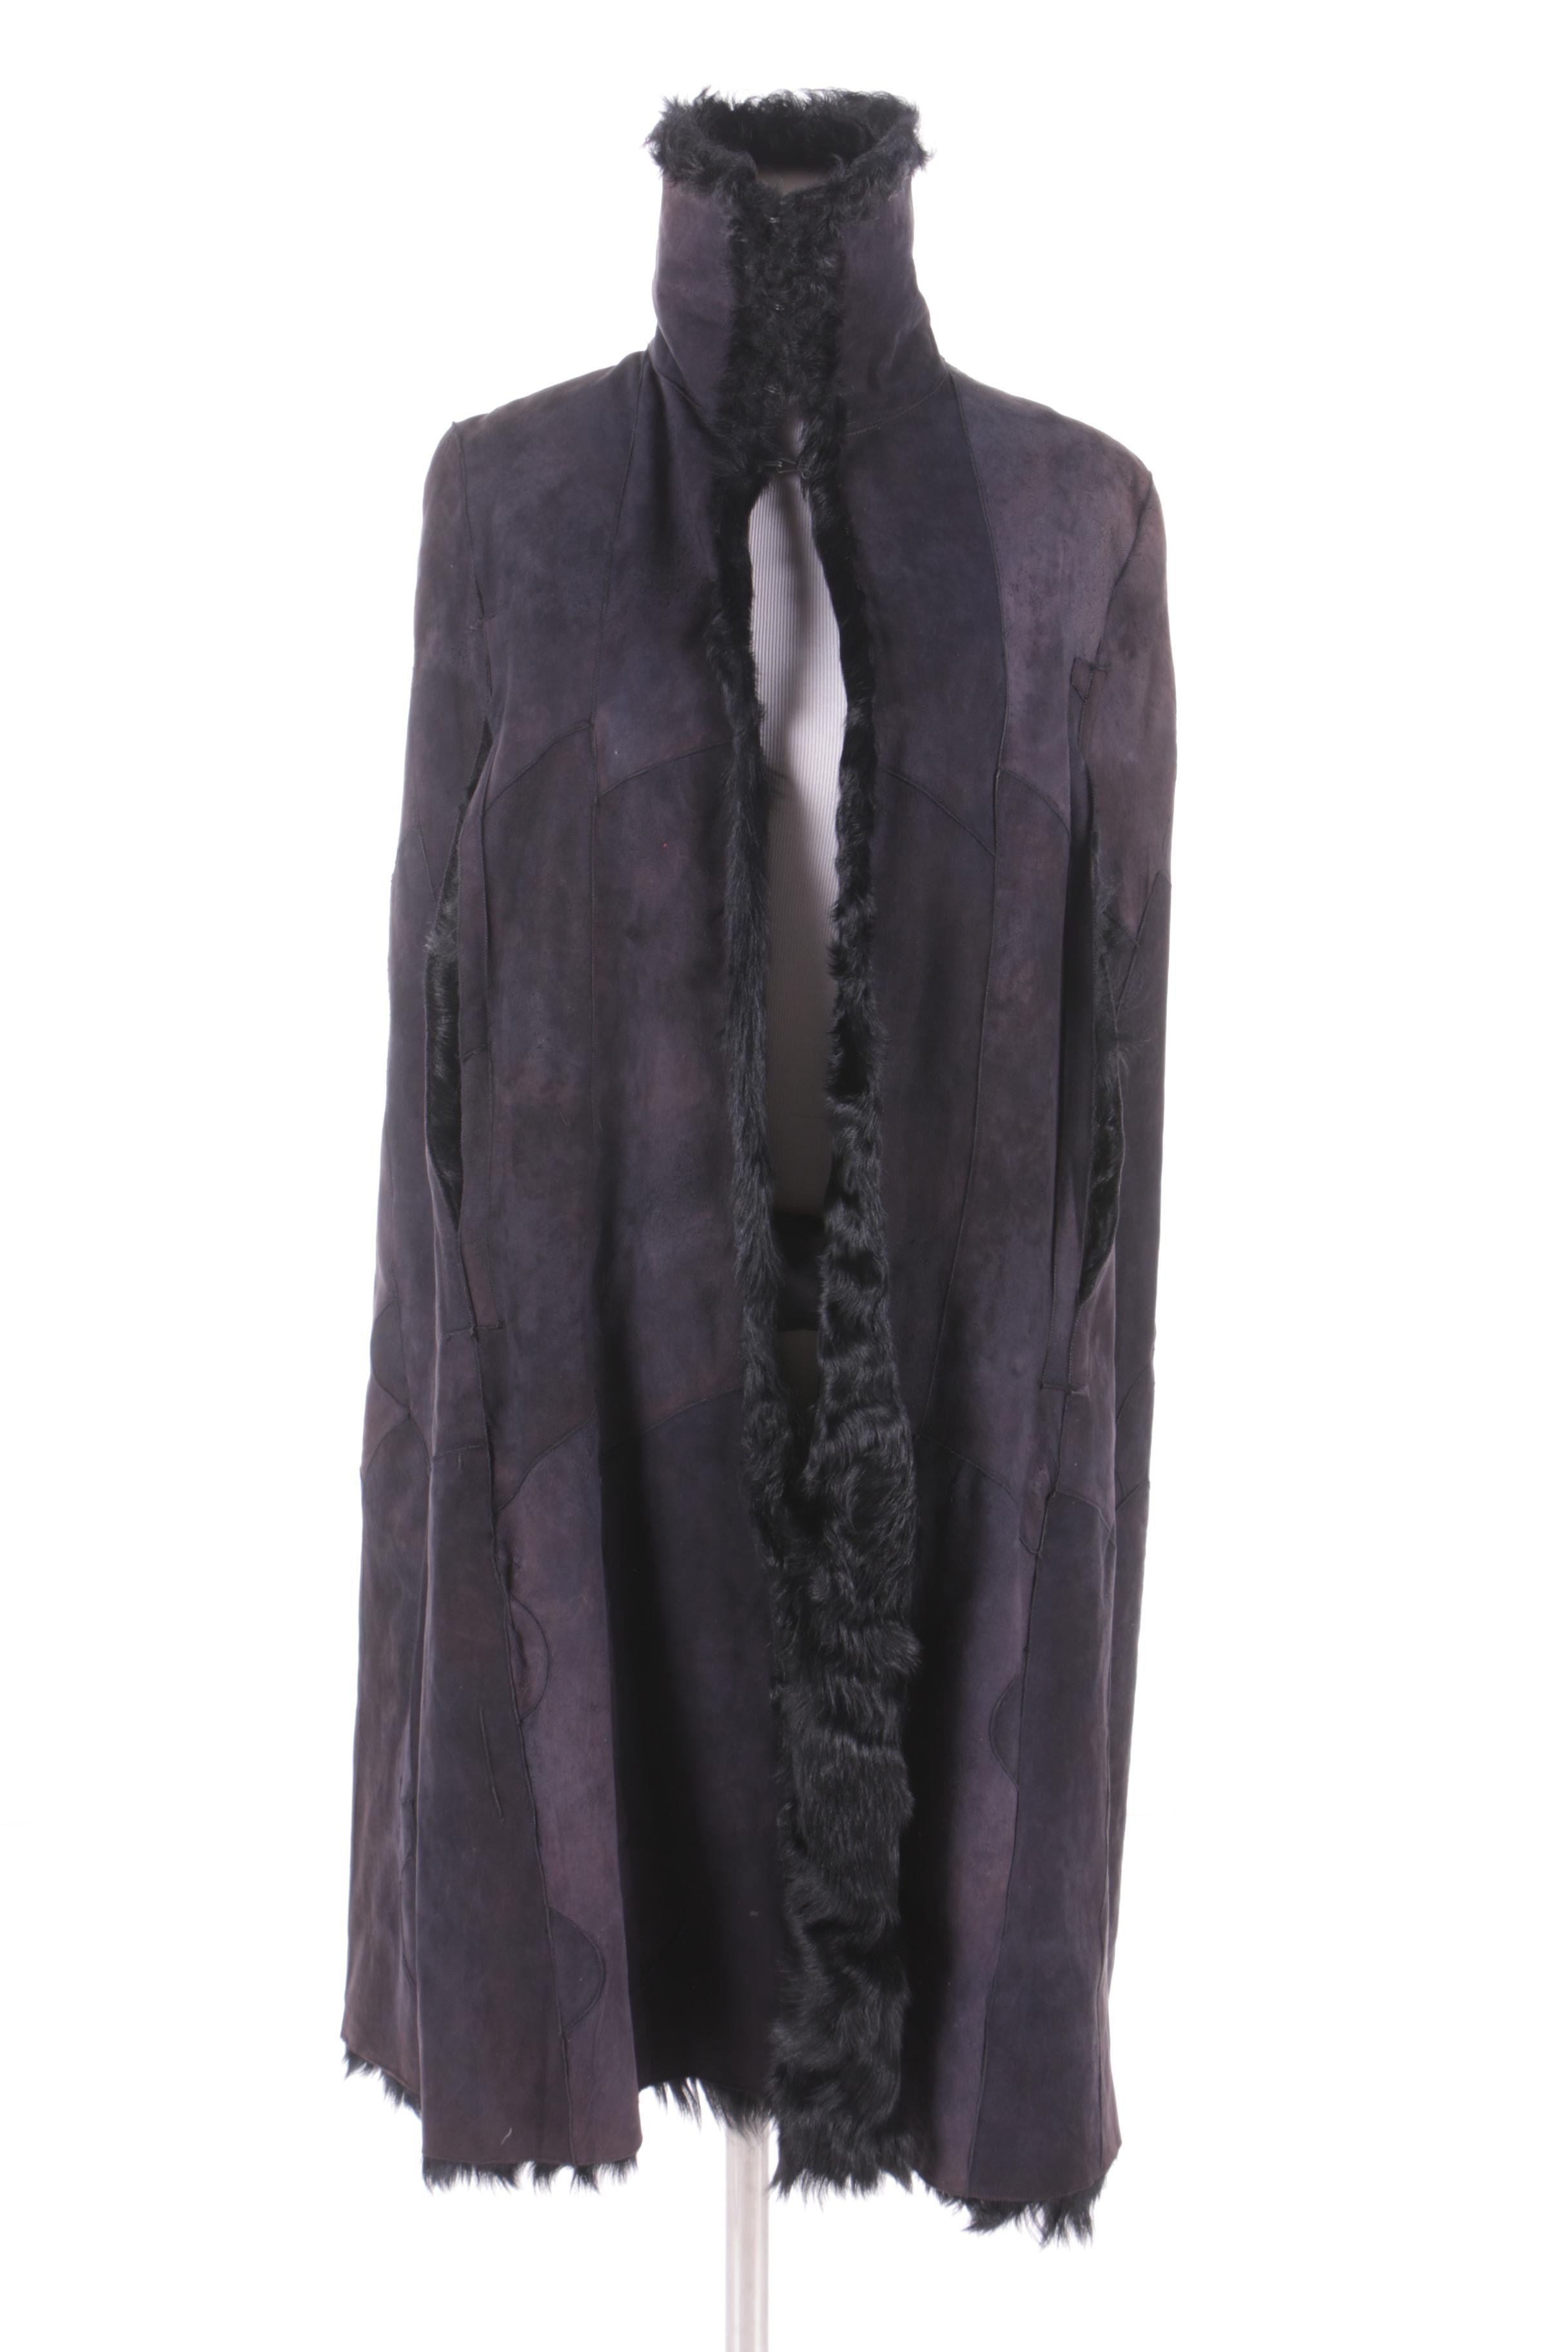 Ann Demeulemeester of Belgium Black Suede Cape with Lamb Fur Lining